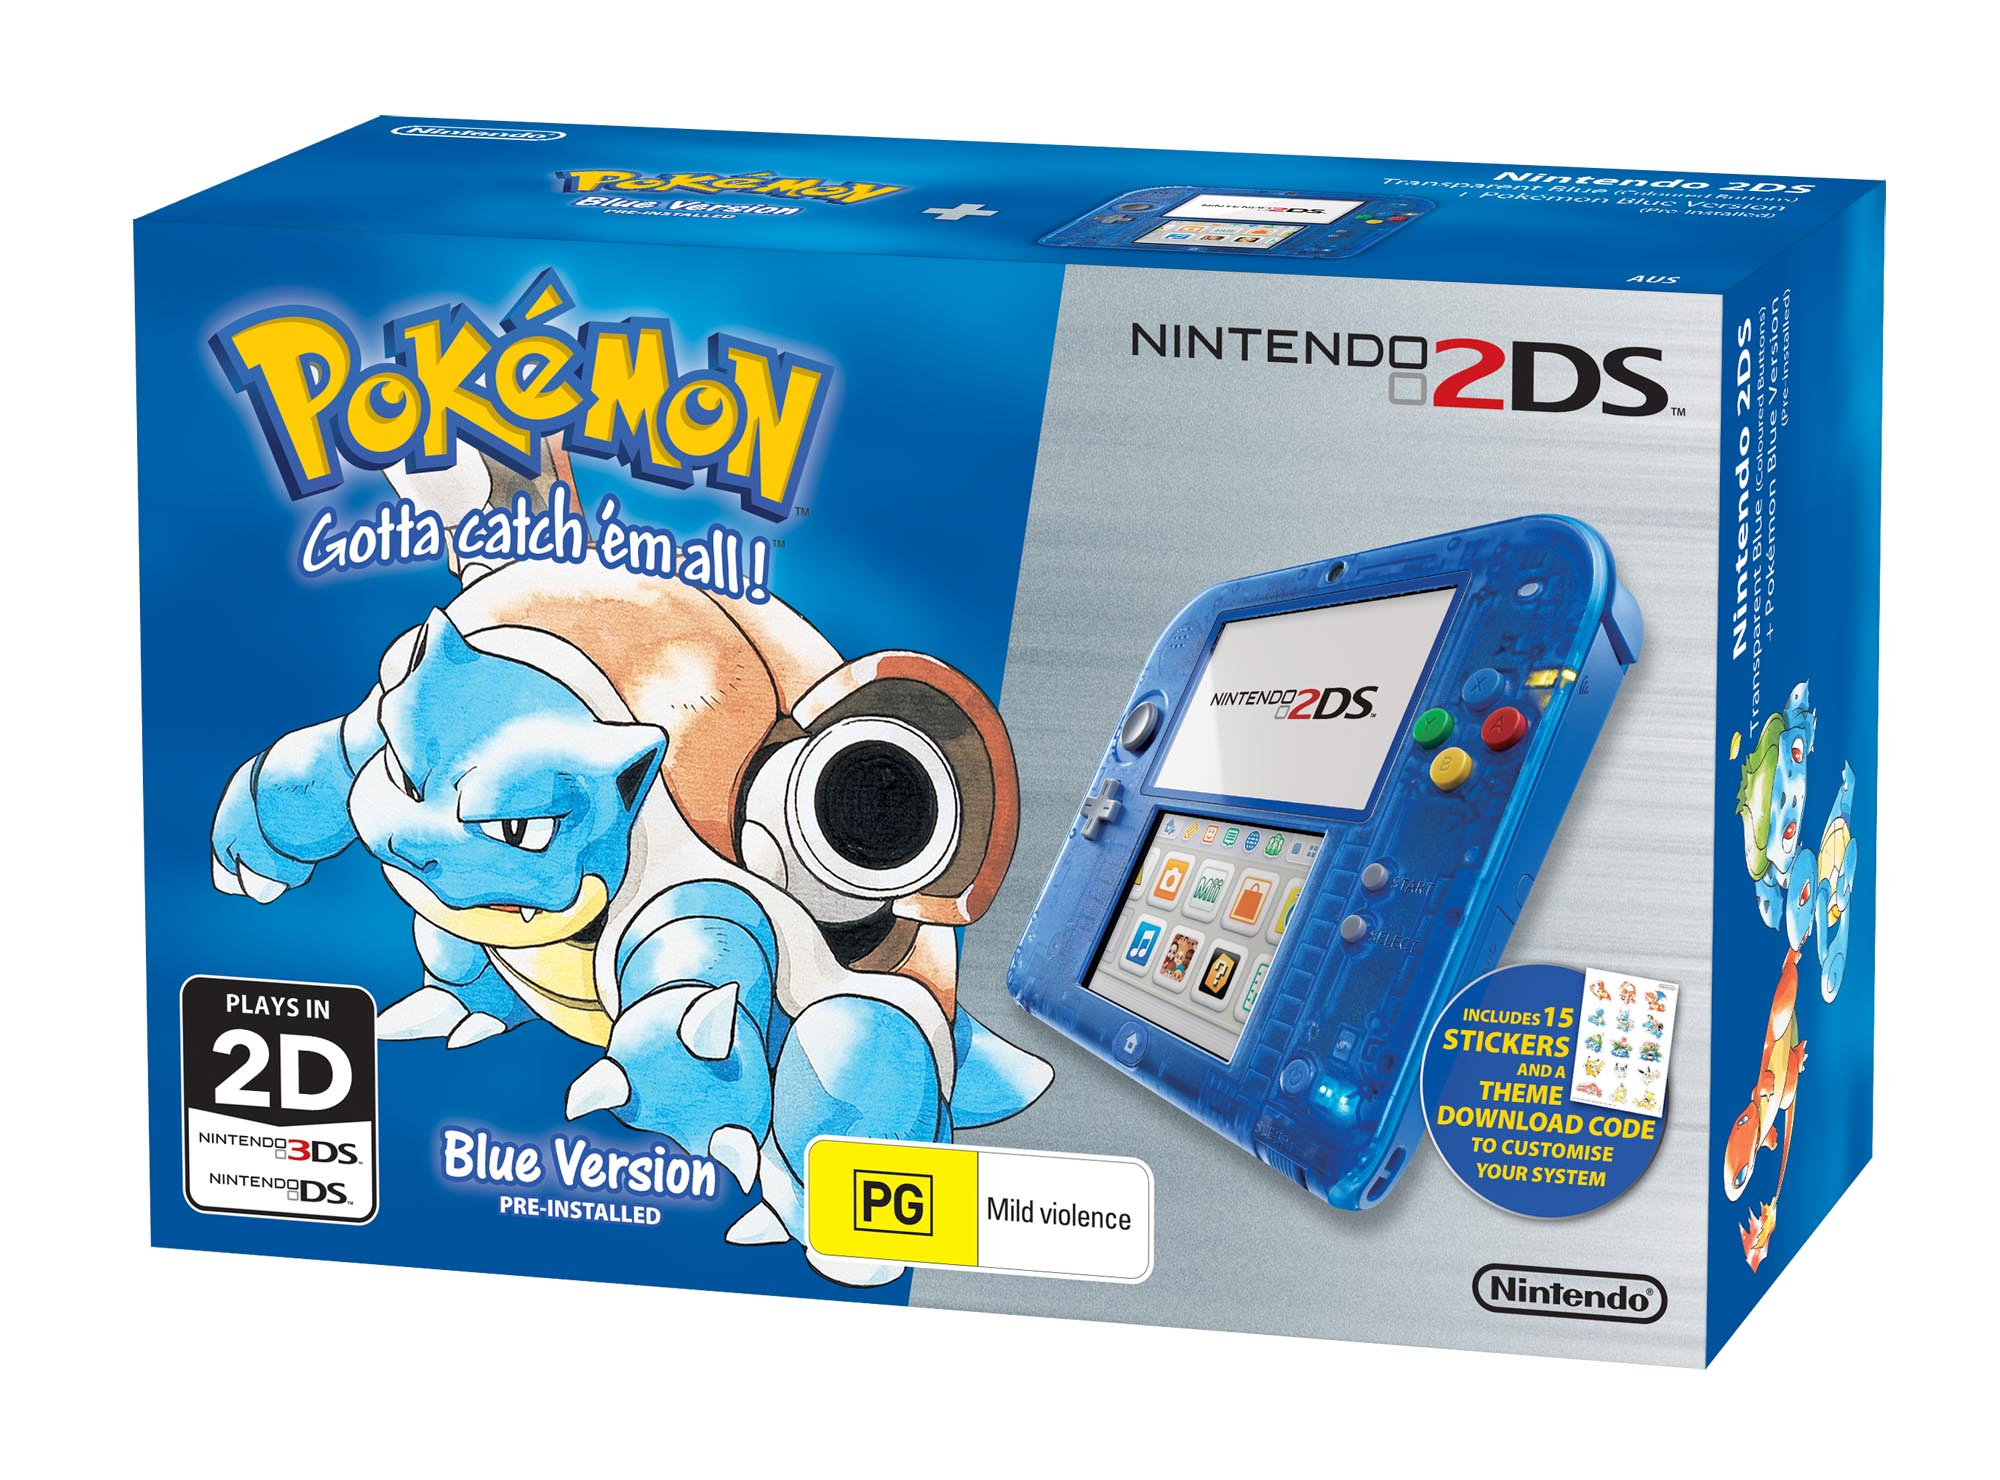 Super Adventure S >> Pokemon Red, Blue and Yellow bundles set for Australian release - 3DS News from Vooks